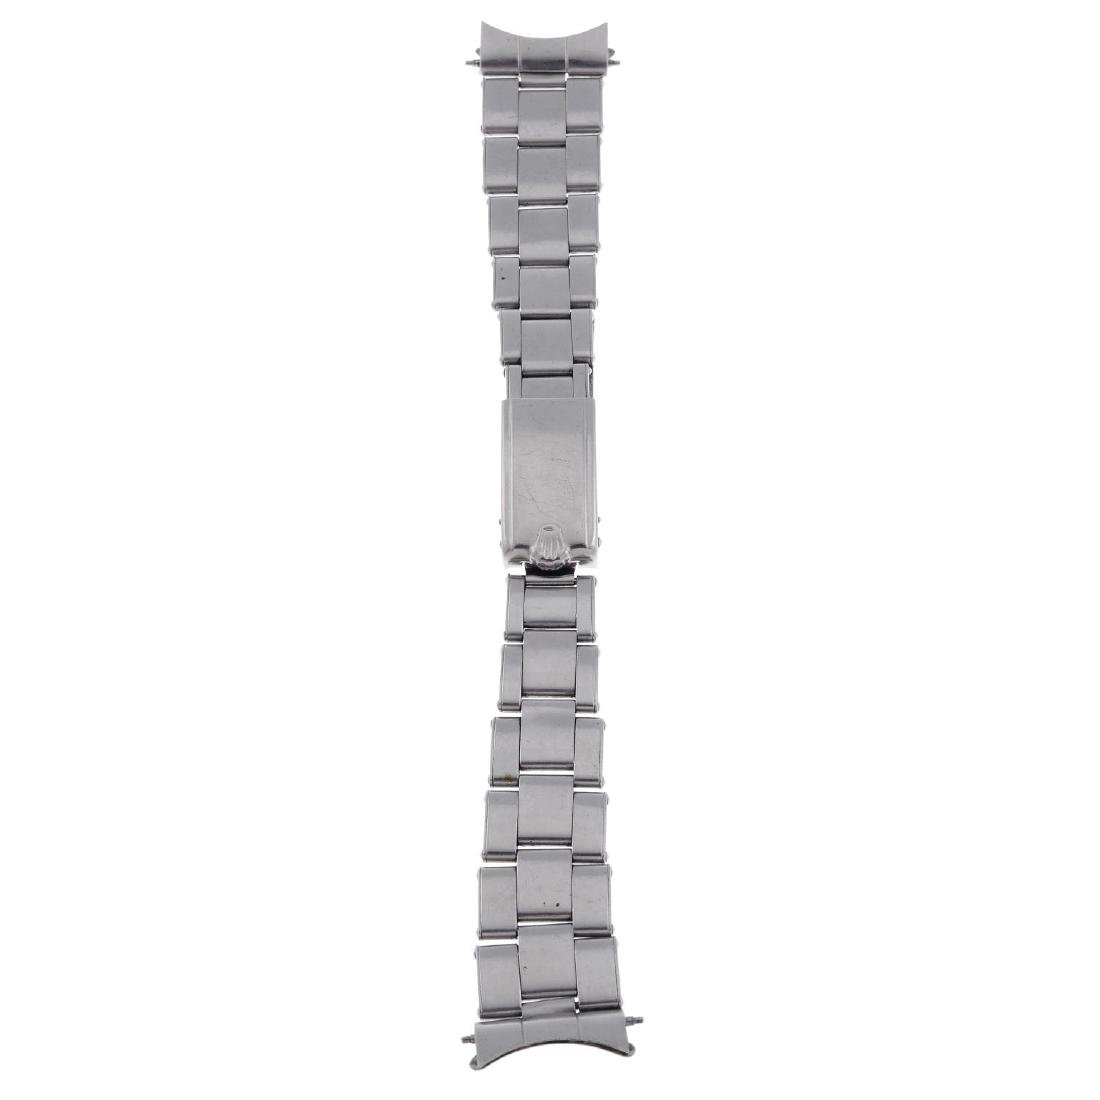 ROLEX - a stainless steel Oyster bracelet with